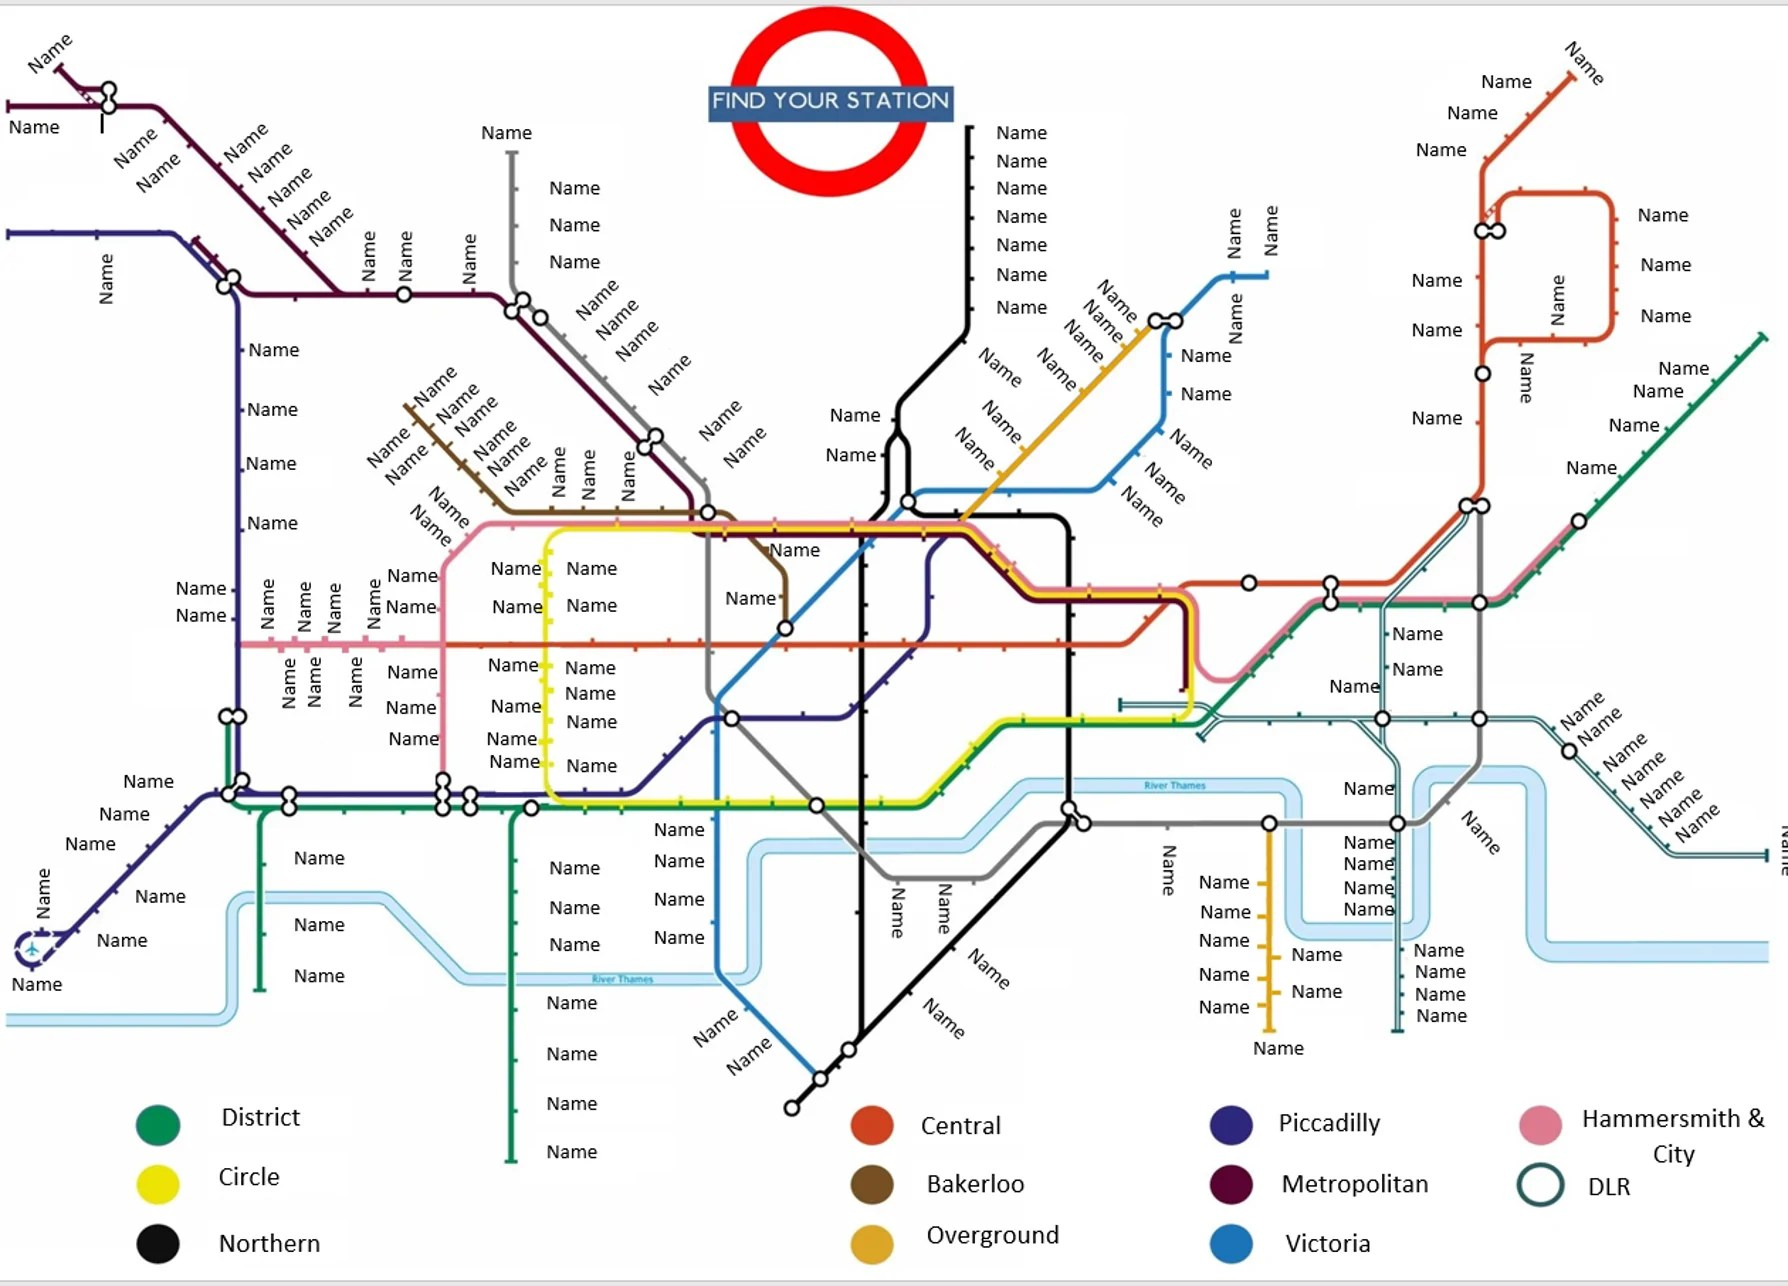 hight resolution of london tube map table seating plan with stations for weddings birthdays parties the party postman